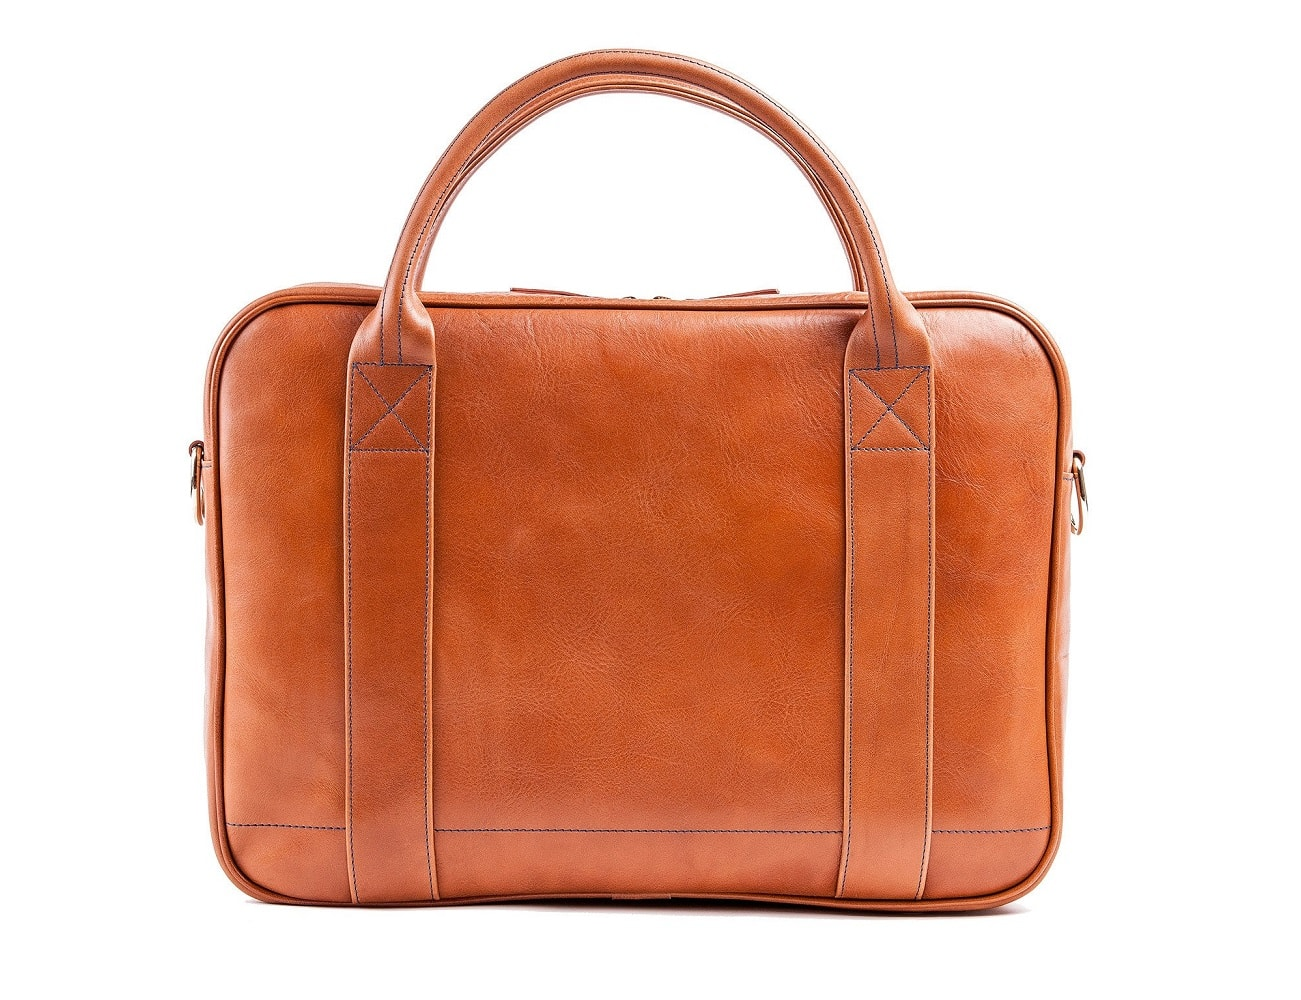 Leather Messenger Bag – Holds Your MacBook, Umbrella, iPad and More